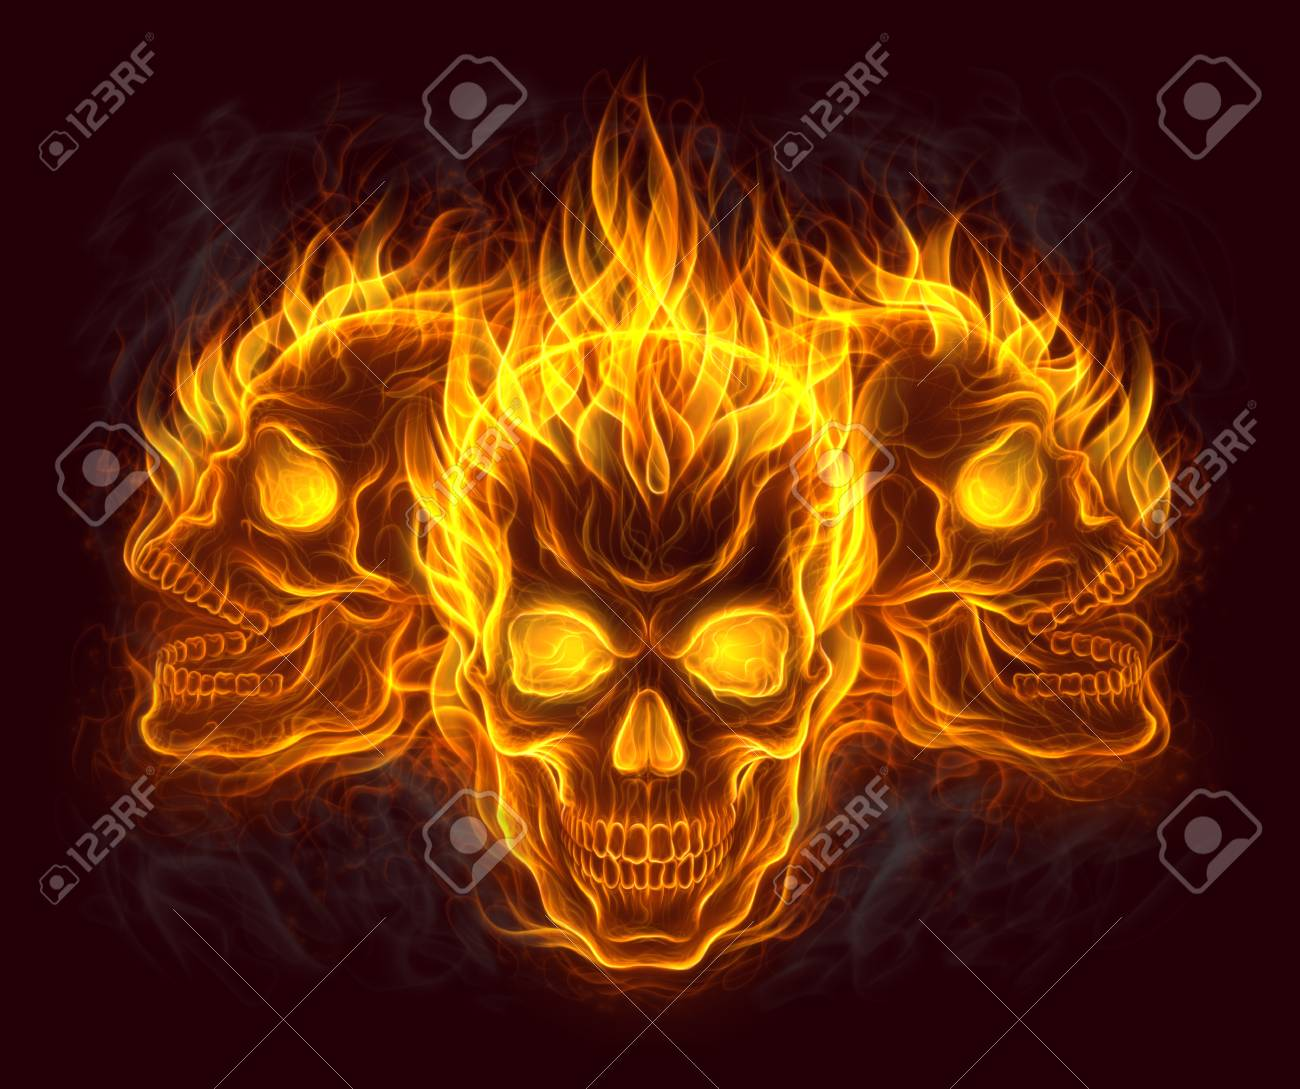 Three fire skulls stock photo picture and royalty free image three fire skulls stock photo 85707167 voltagebd Images